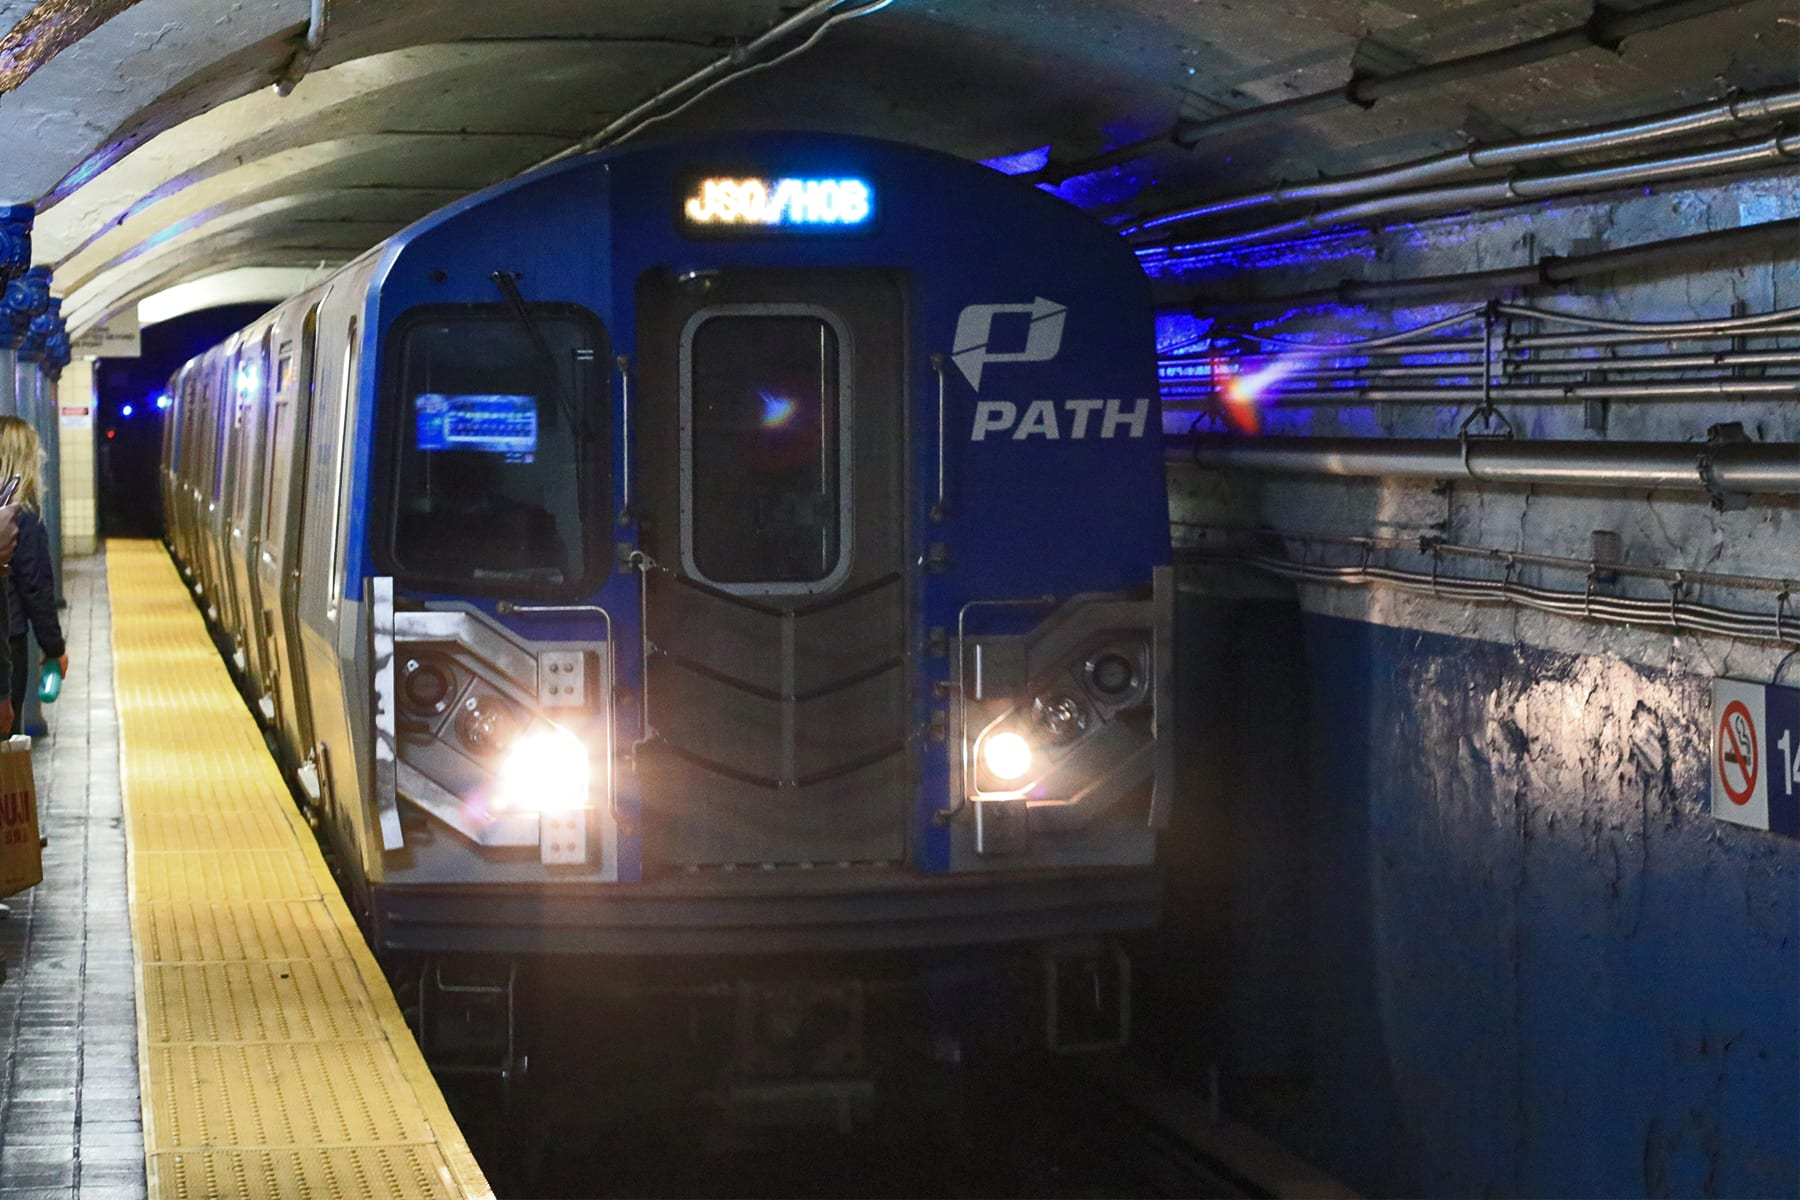 08-NY-journey-subway02-path.jpg